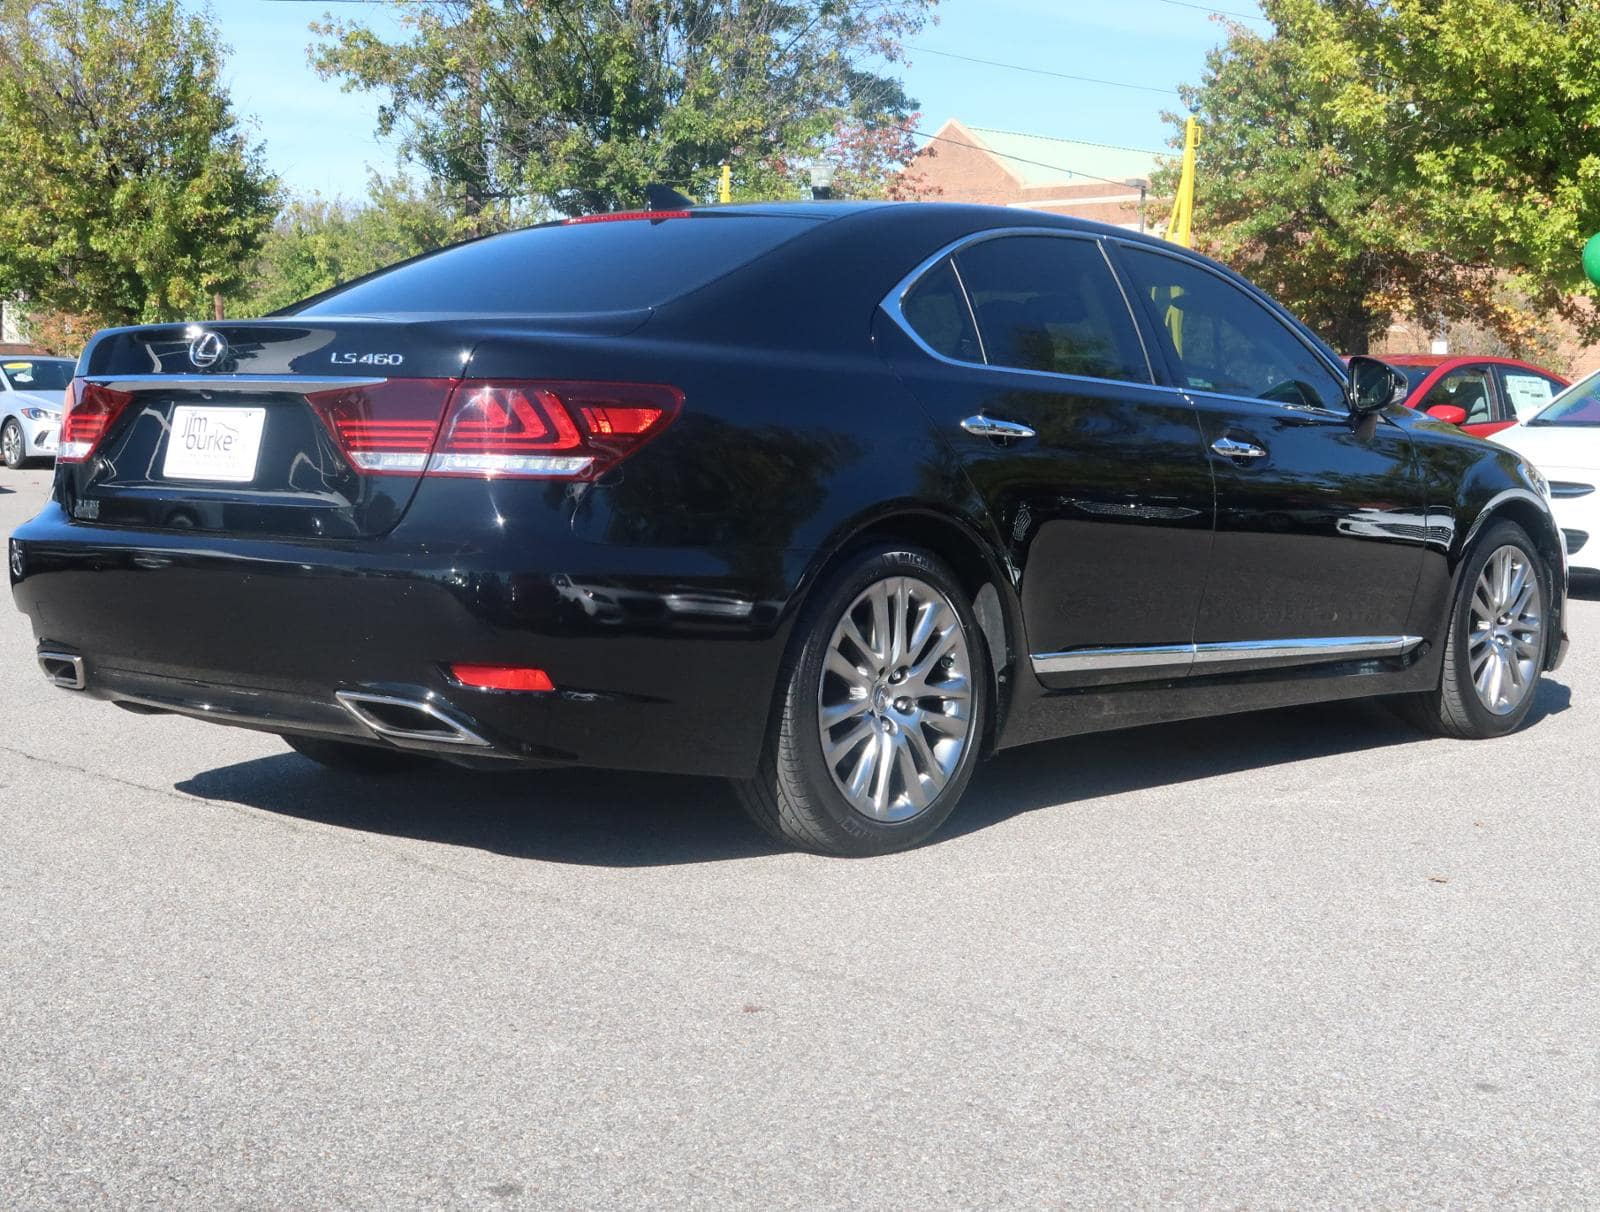 Black Lexus In Alabama For Sale ▷ Used Cars Buysellsearch